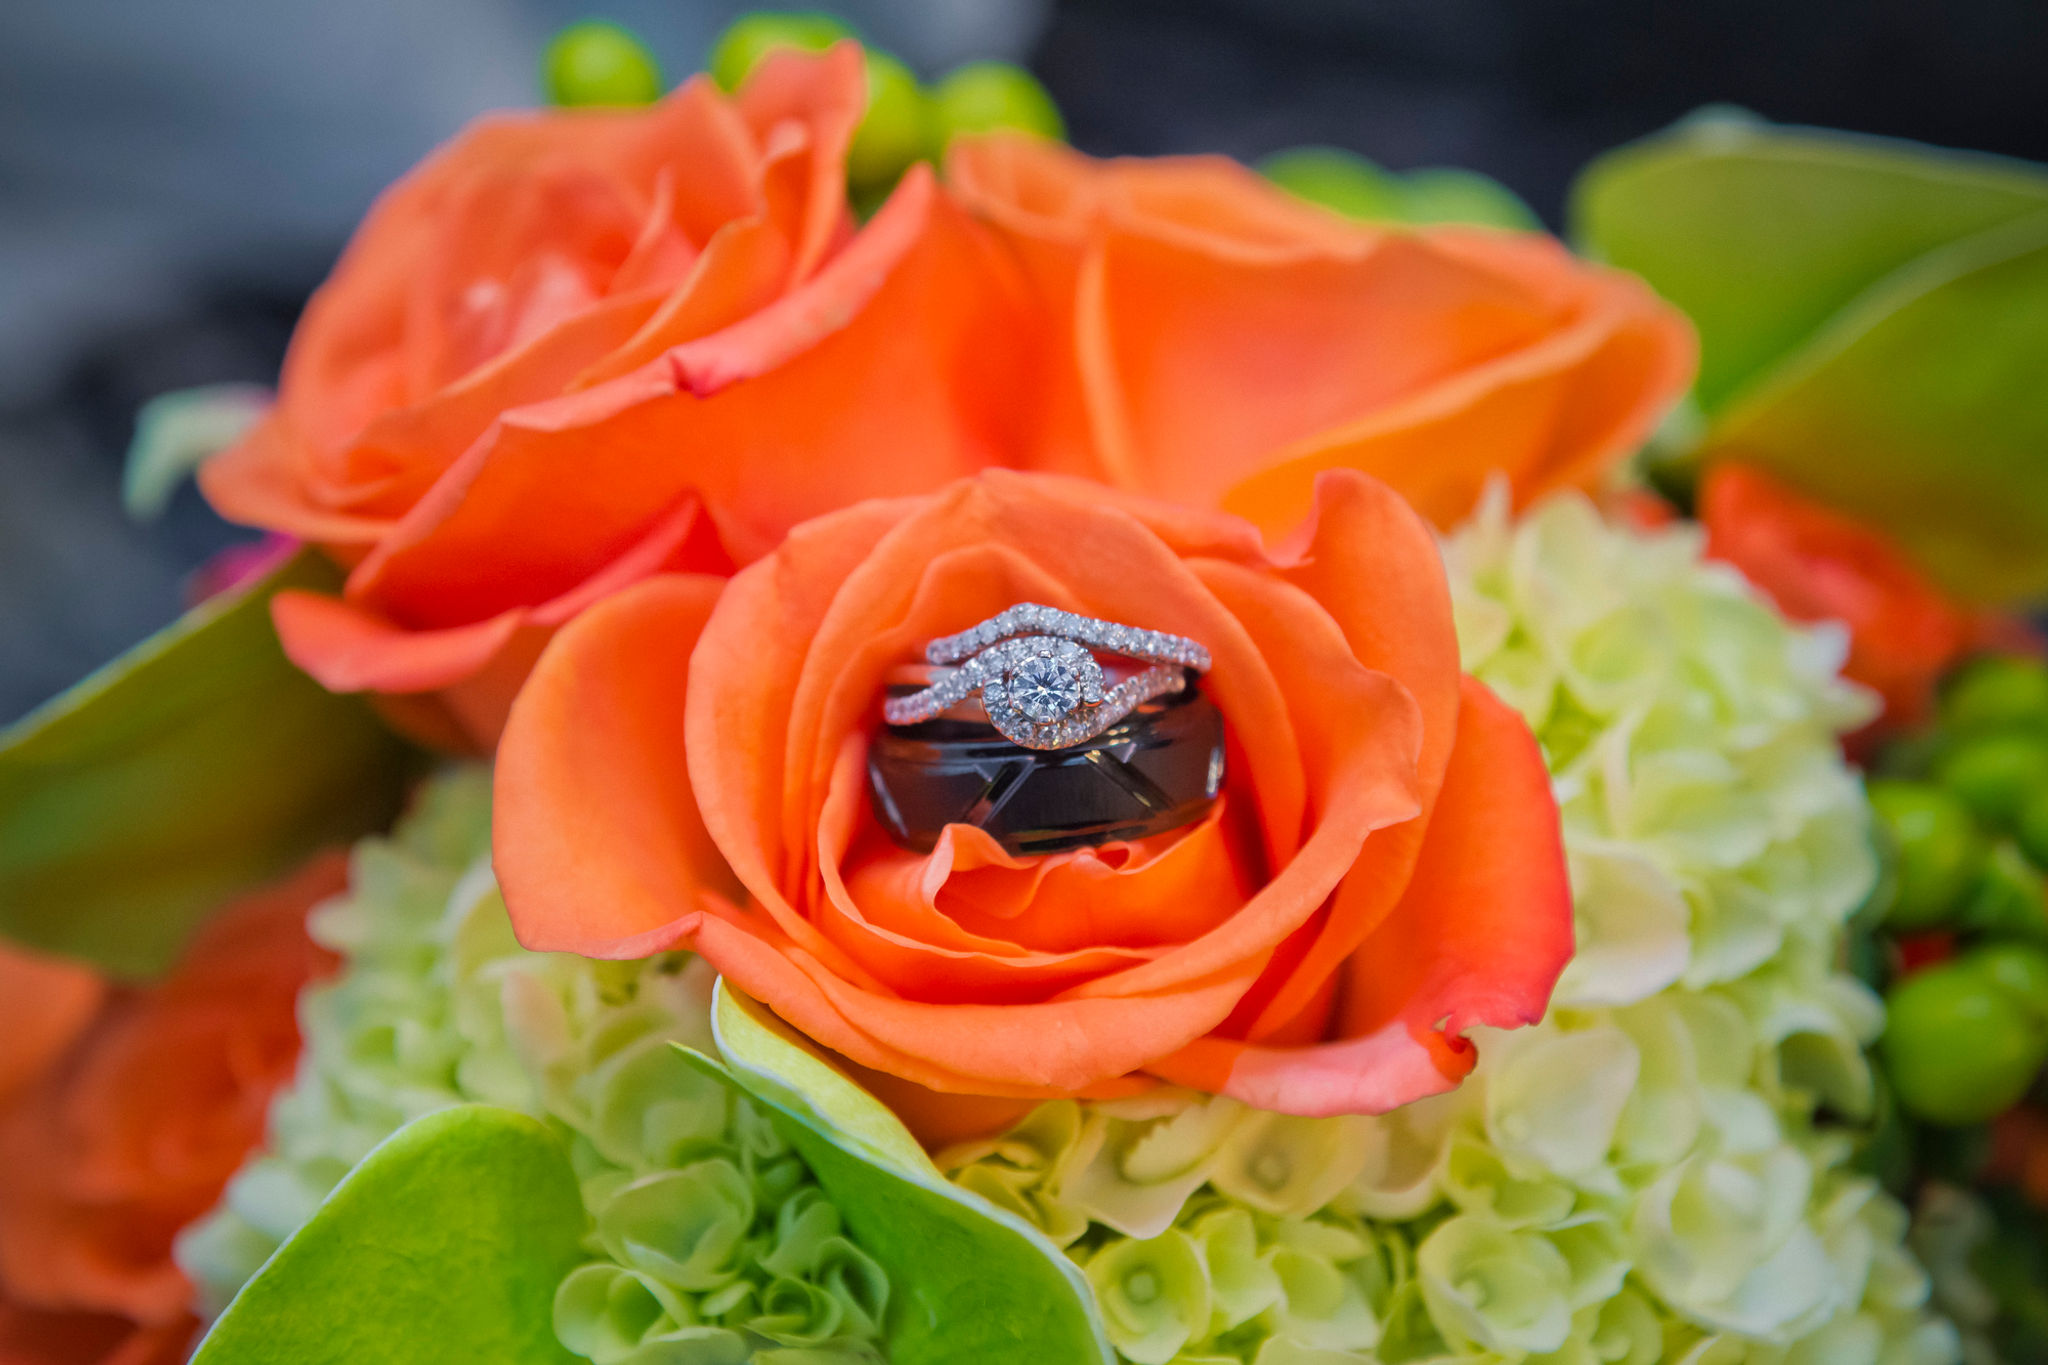 The most affordable wedding cakes found in salt lake city utah affordable wedding cakes salt lake city utah wedding street izmirmasajfo